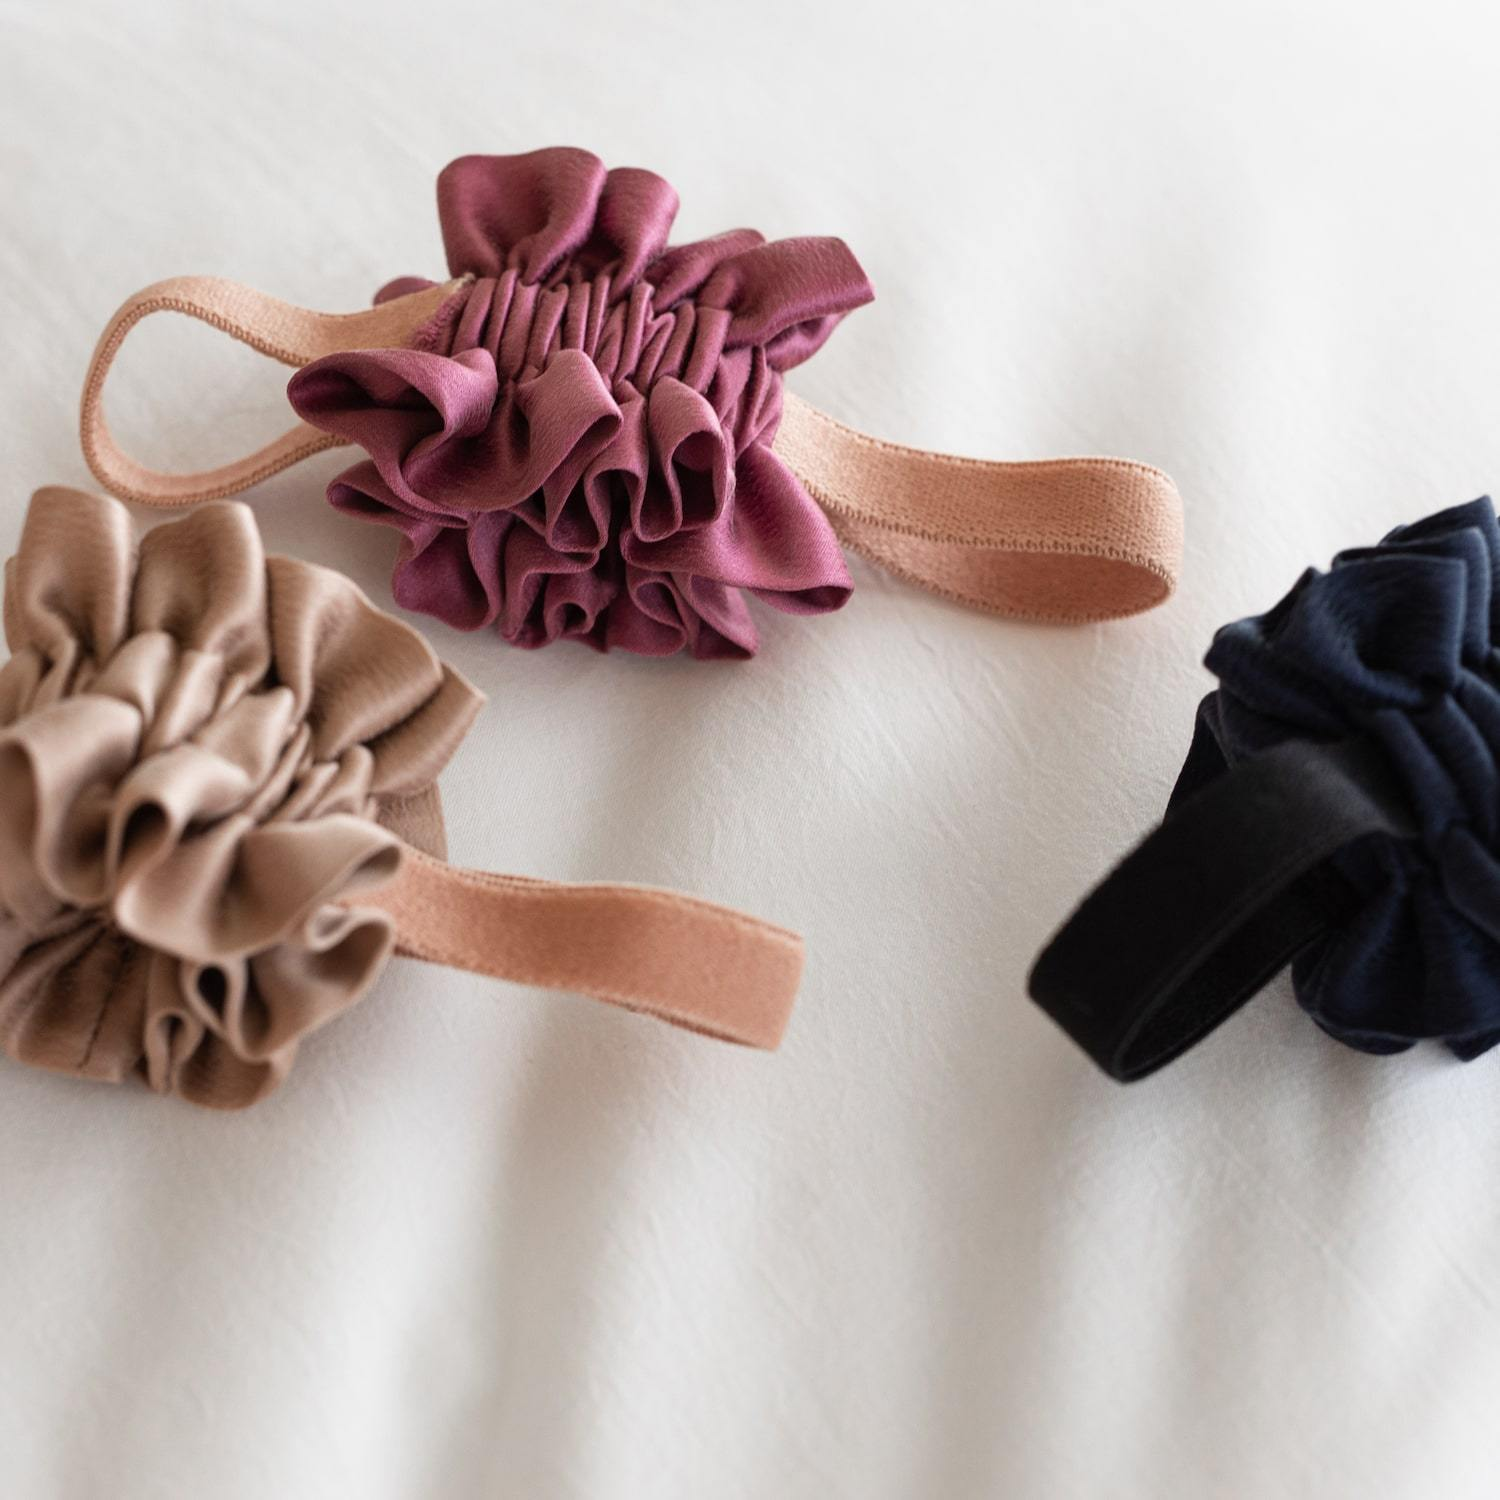 Lunya Sleepwear Washable Silk Scrunchie Trio - #Bare/Rouge/Deep Night